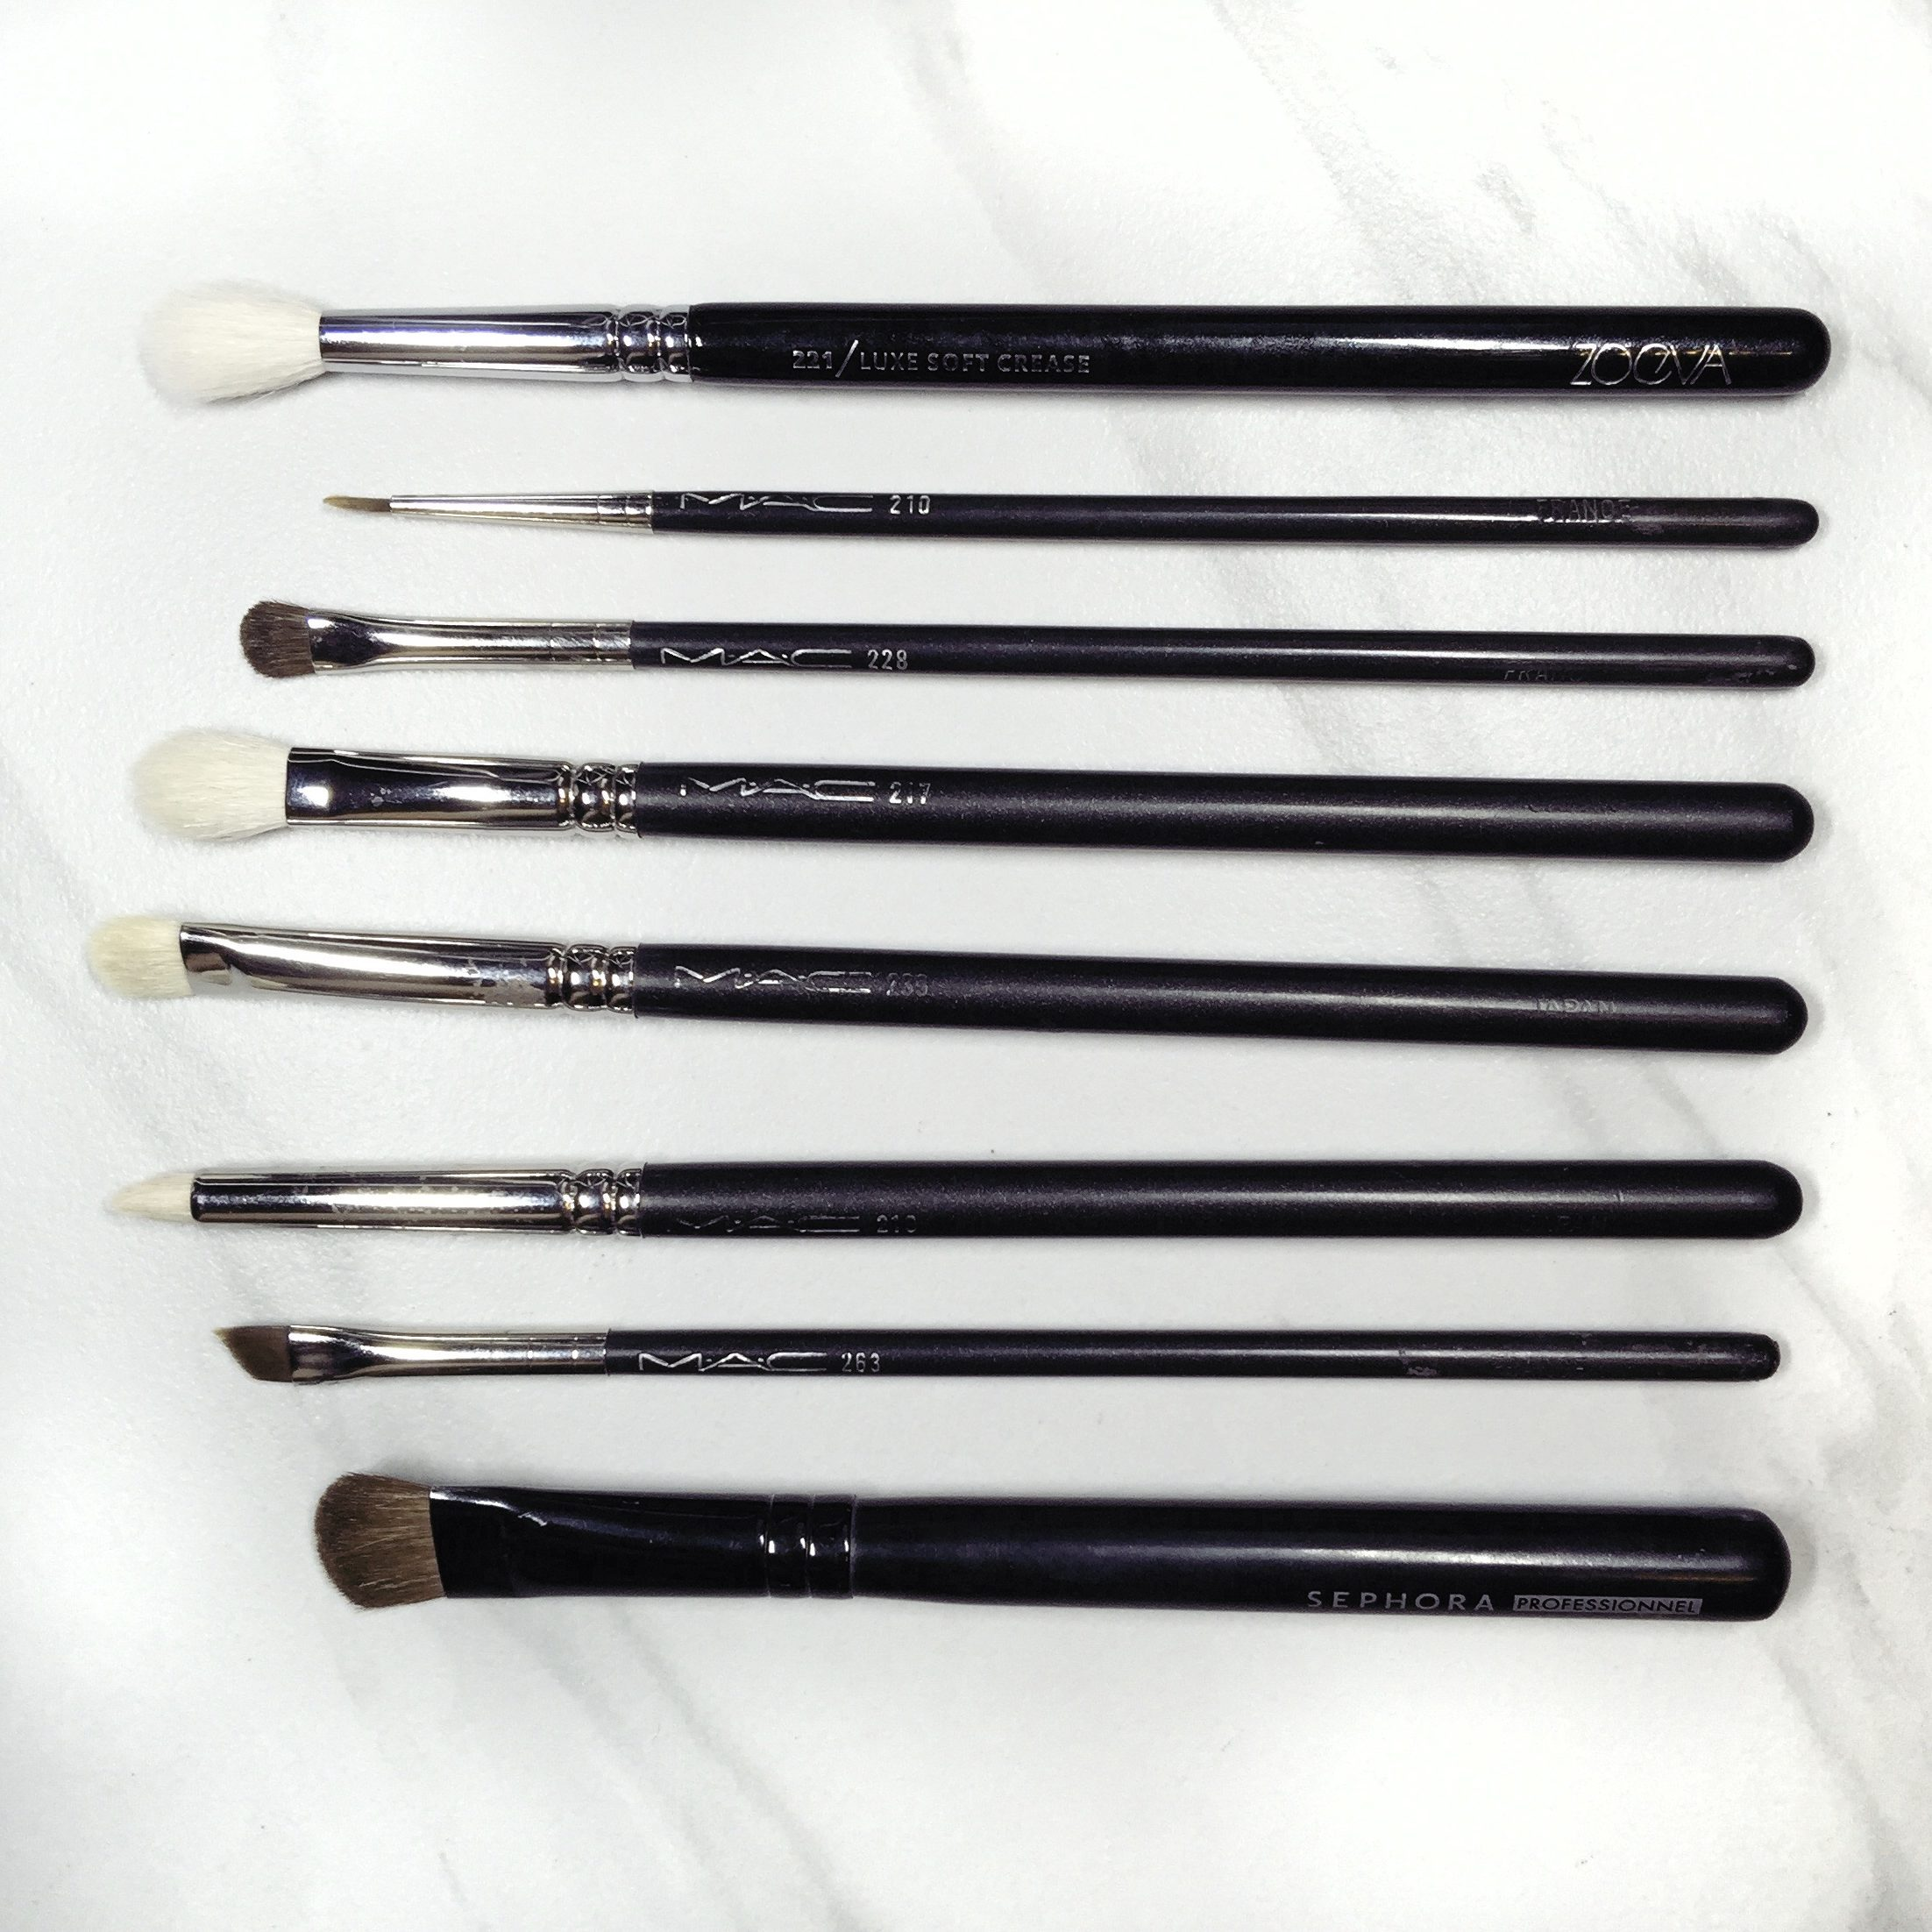 tease-and-makeup-makeup-brushes-for-the-eyes